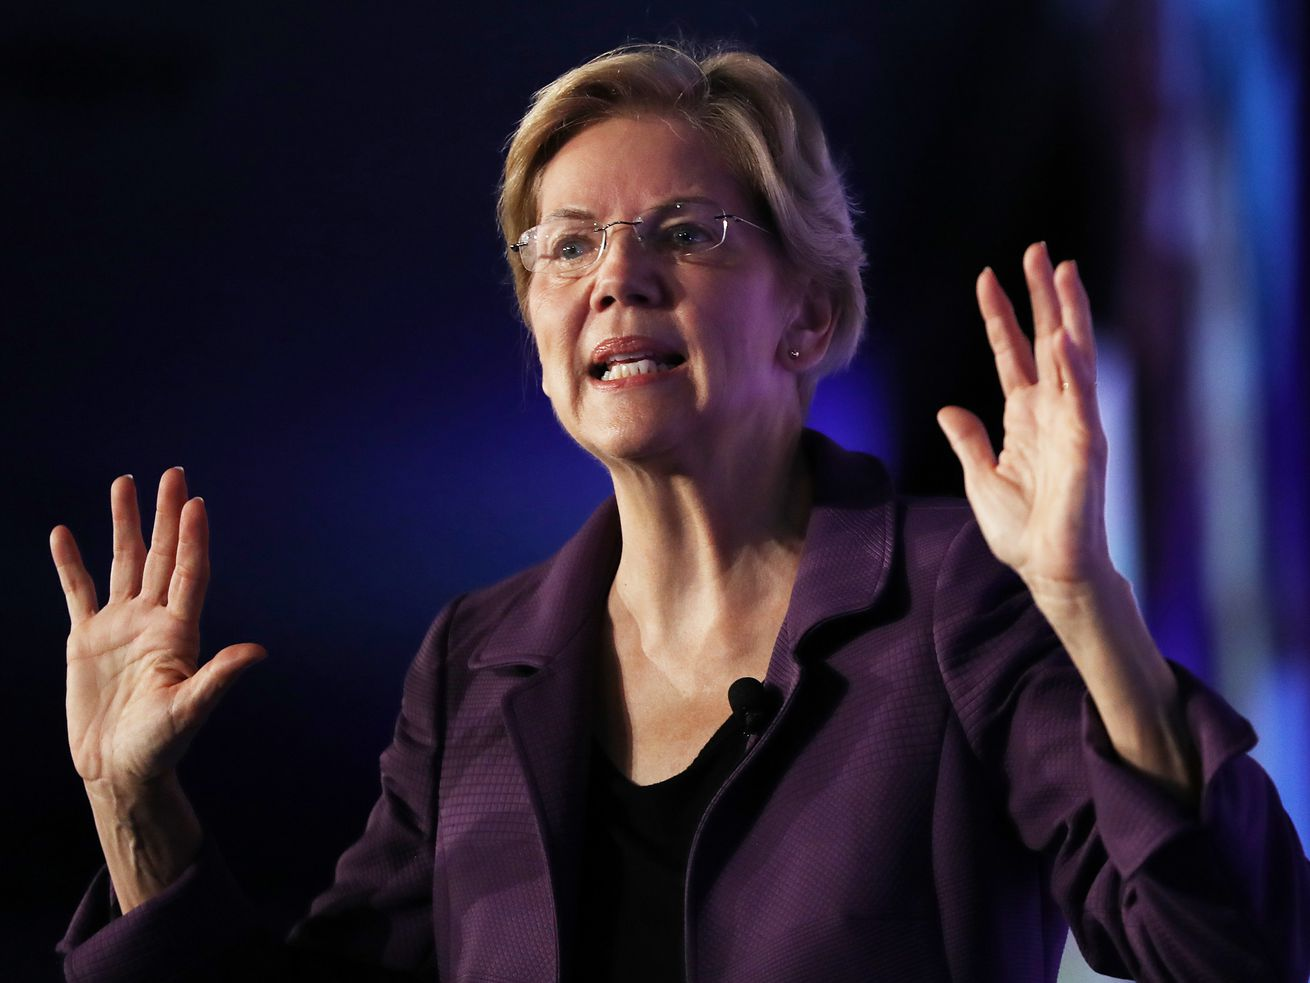 Elizabeth Warren stands on stage with her hands in the air.